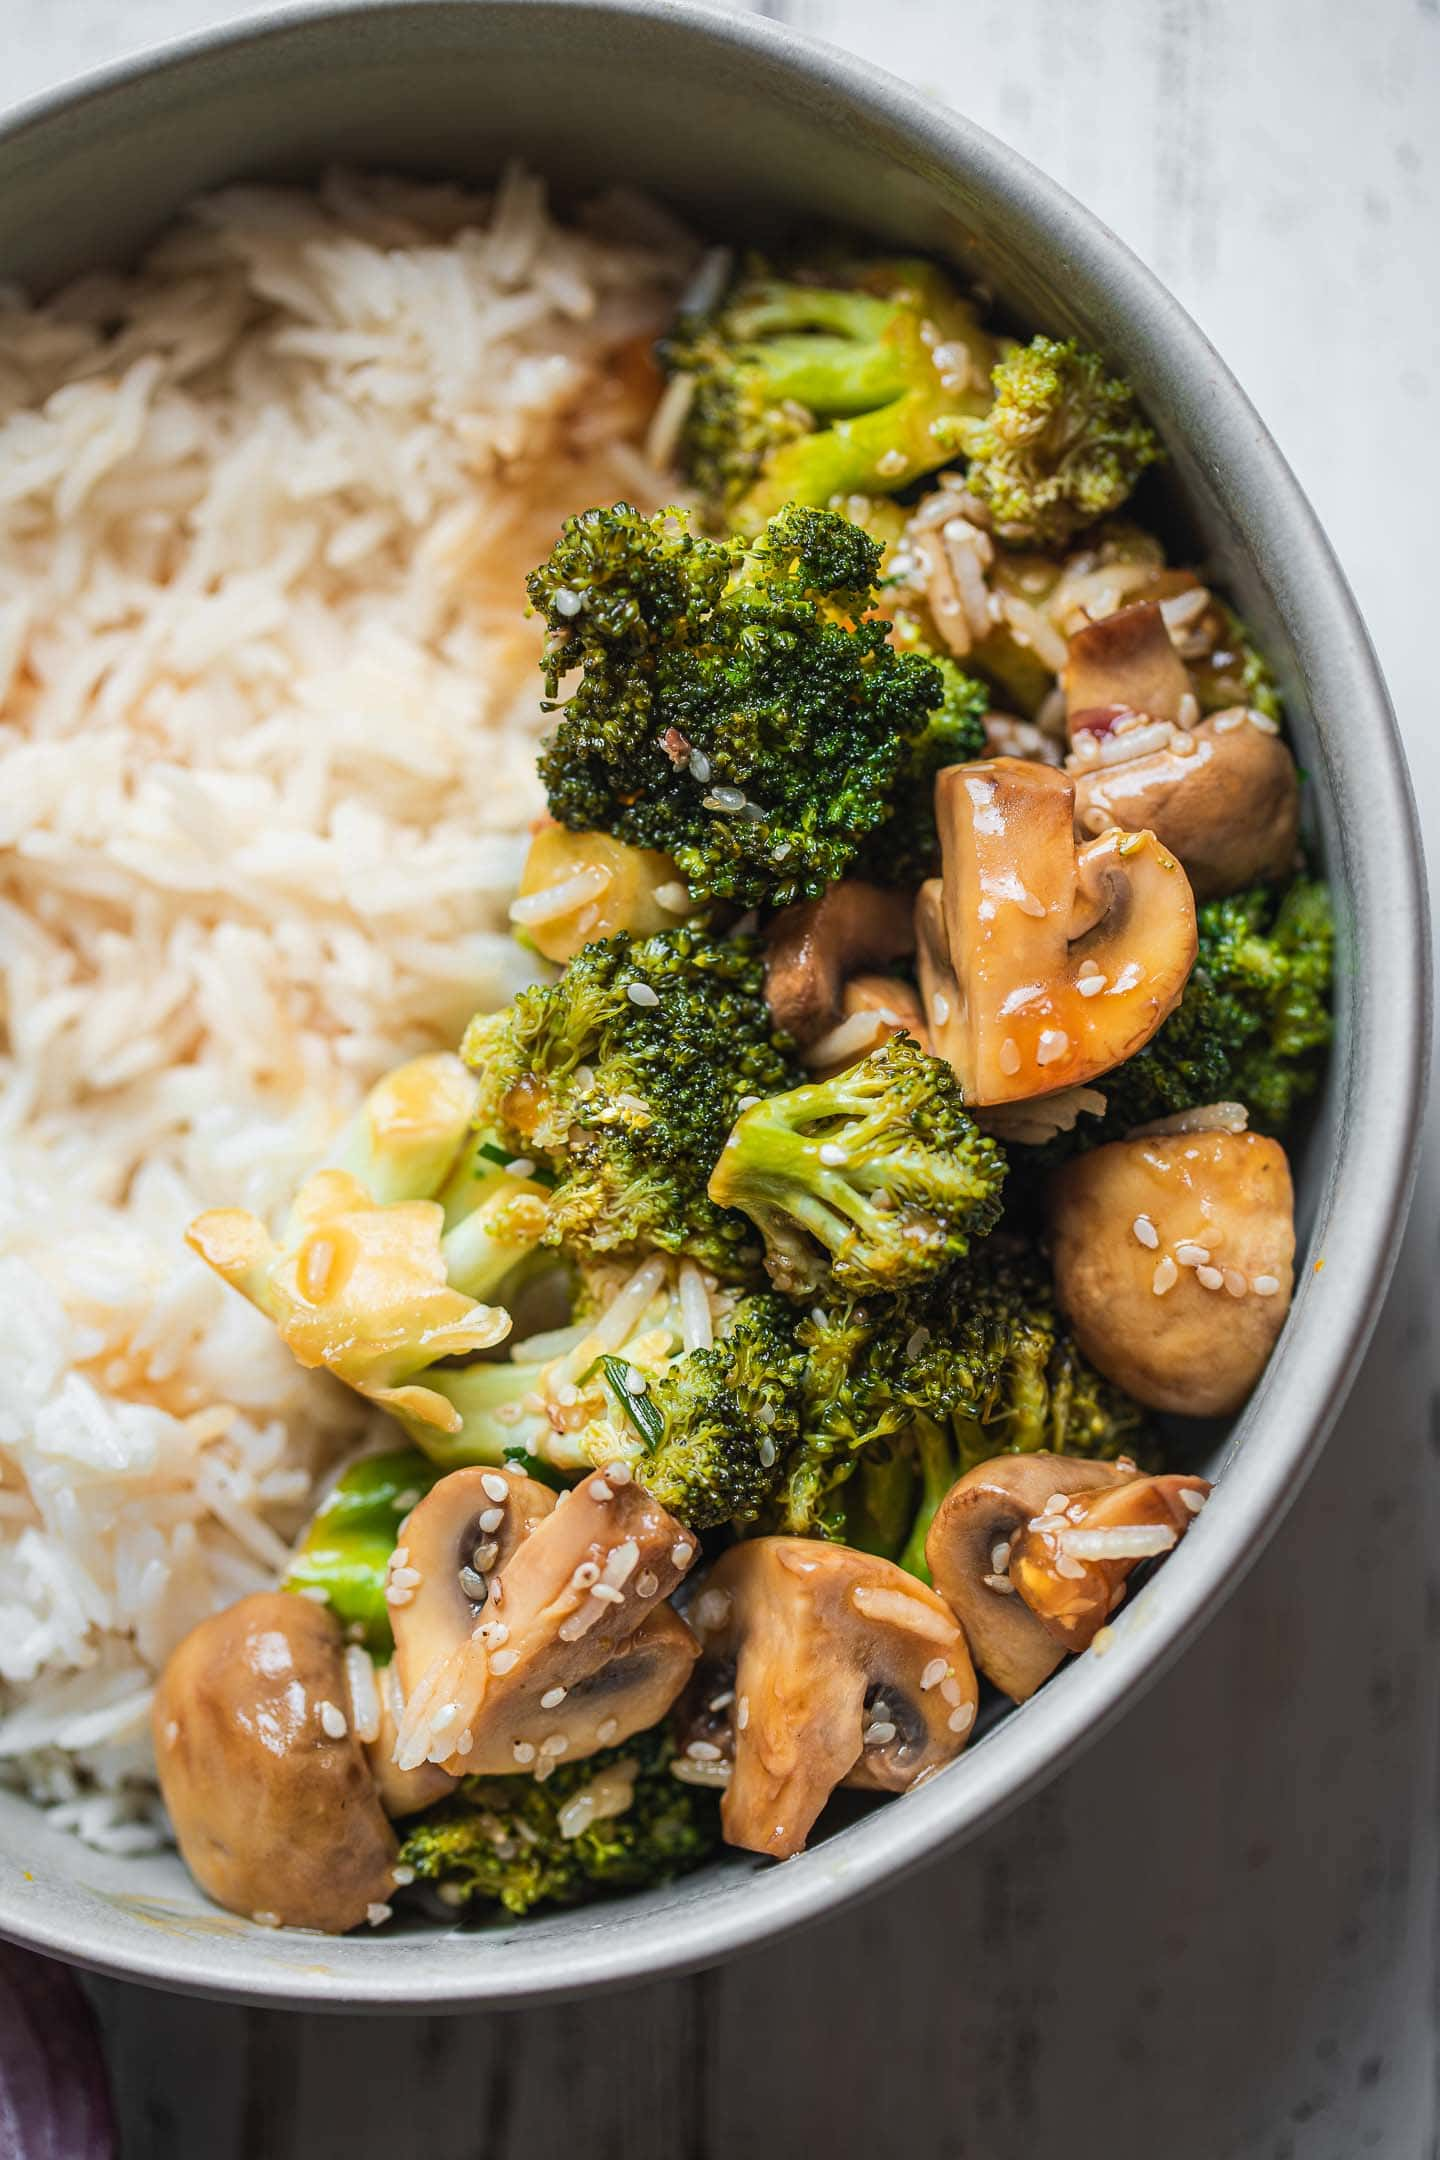 Stir-fried broccoli and mushrooms with rice